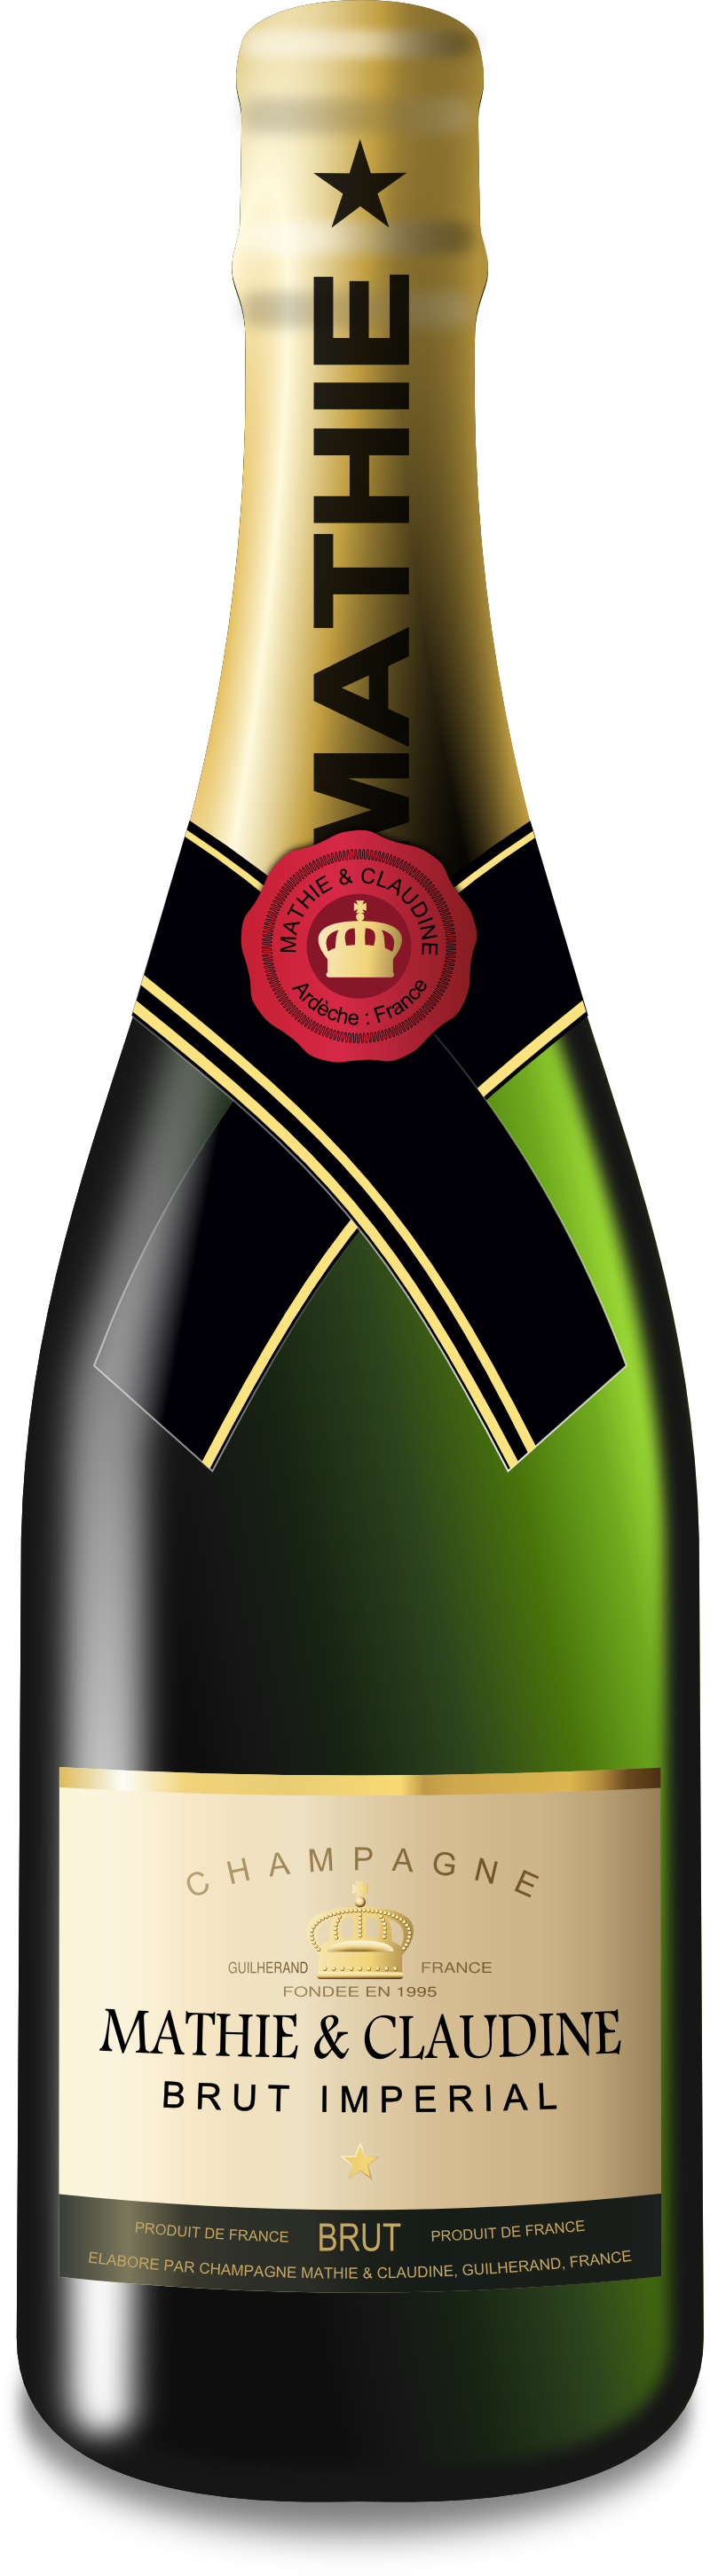 Champagne bottle png. Images free download champaign